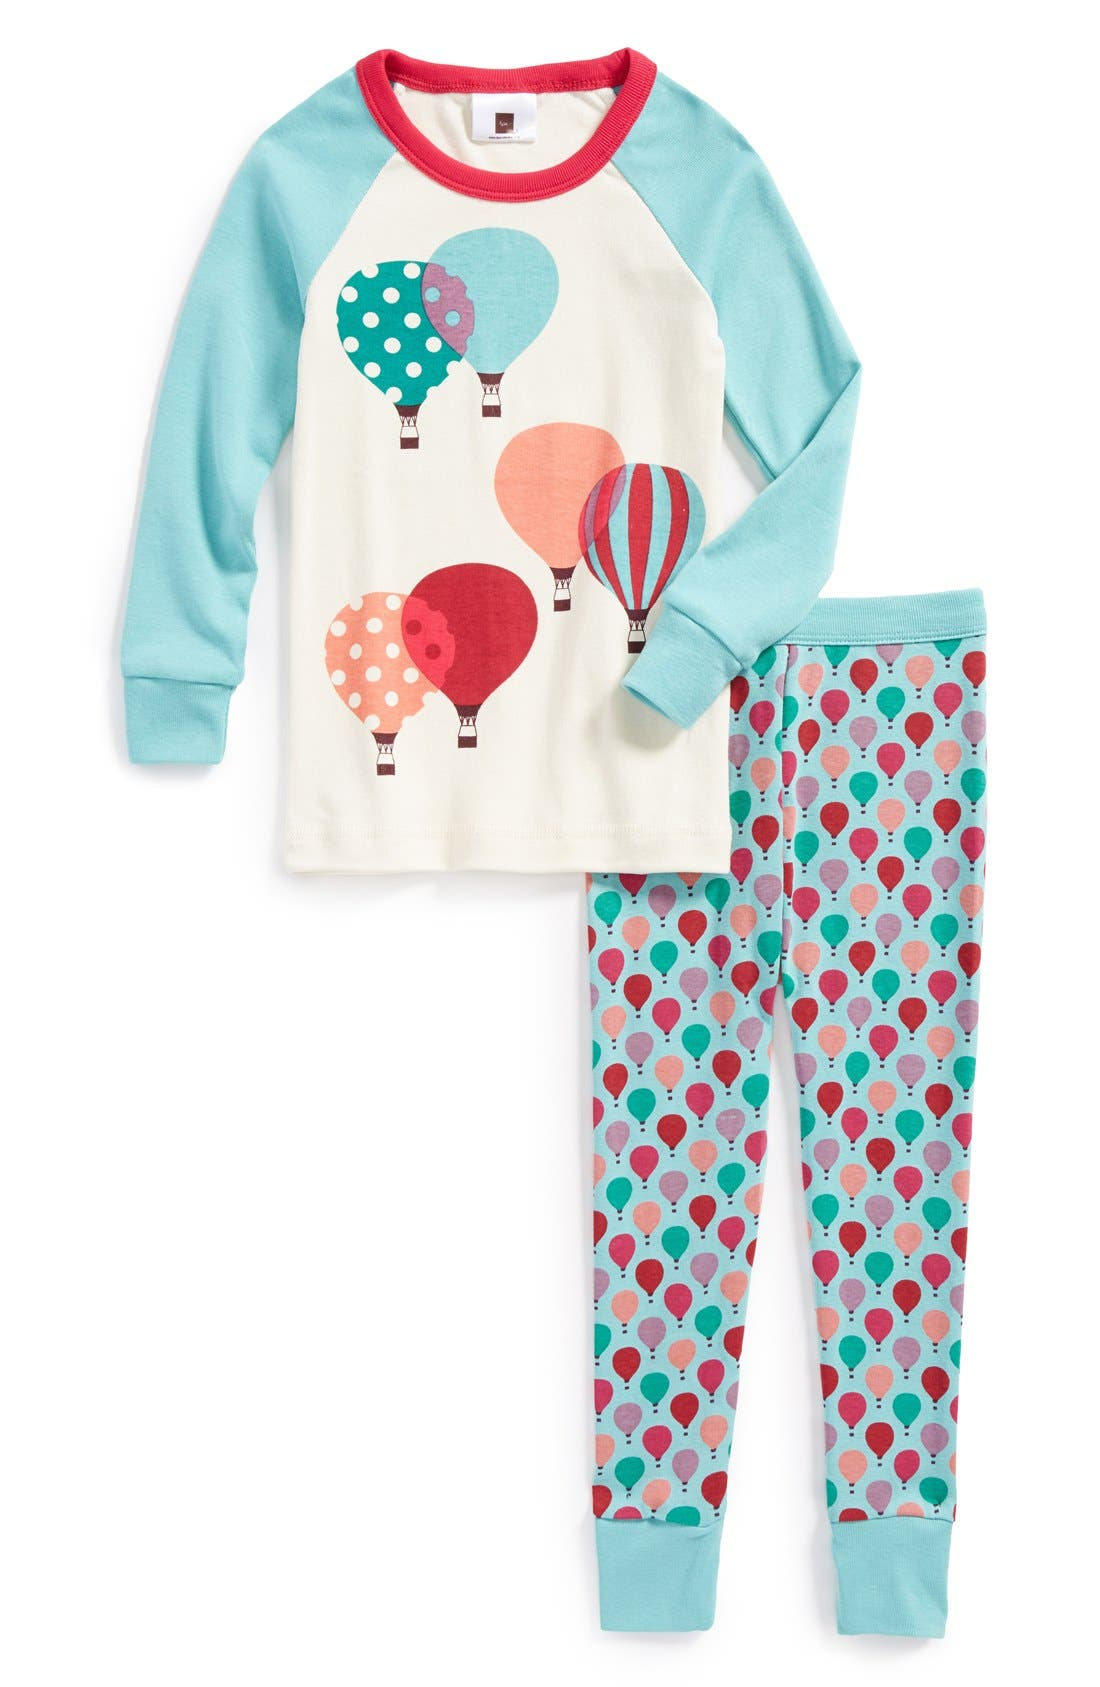 Main Image - Tea Collection 'Luftballons' Two-Piece Fitted Pajamas (Toddler Girls, Little Girls & Big Girls)